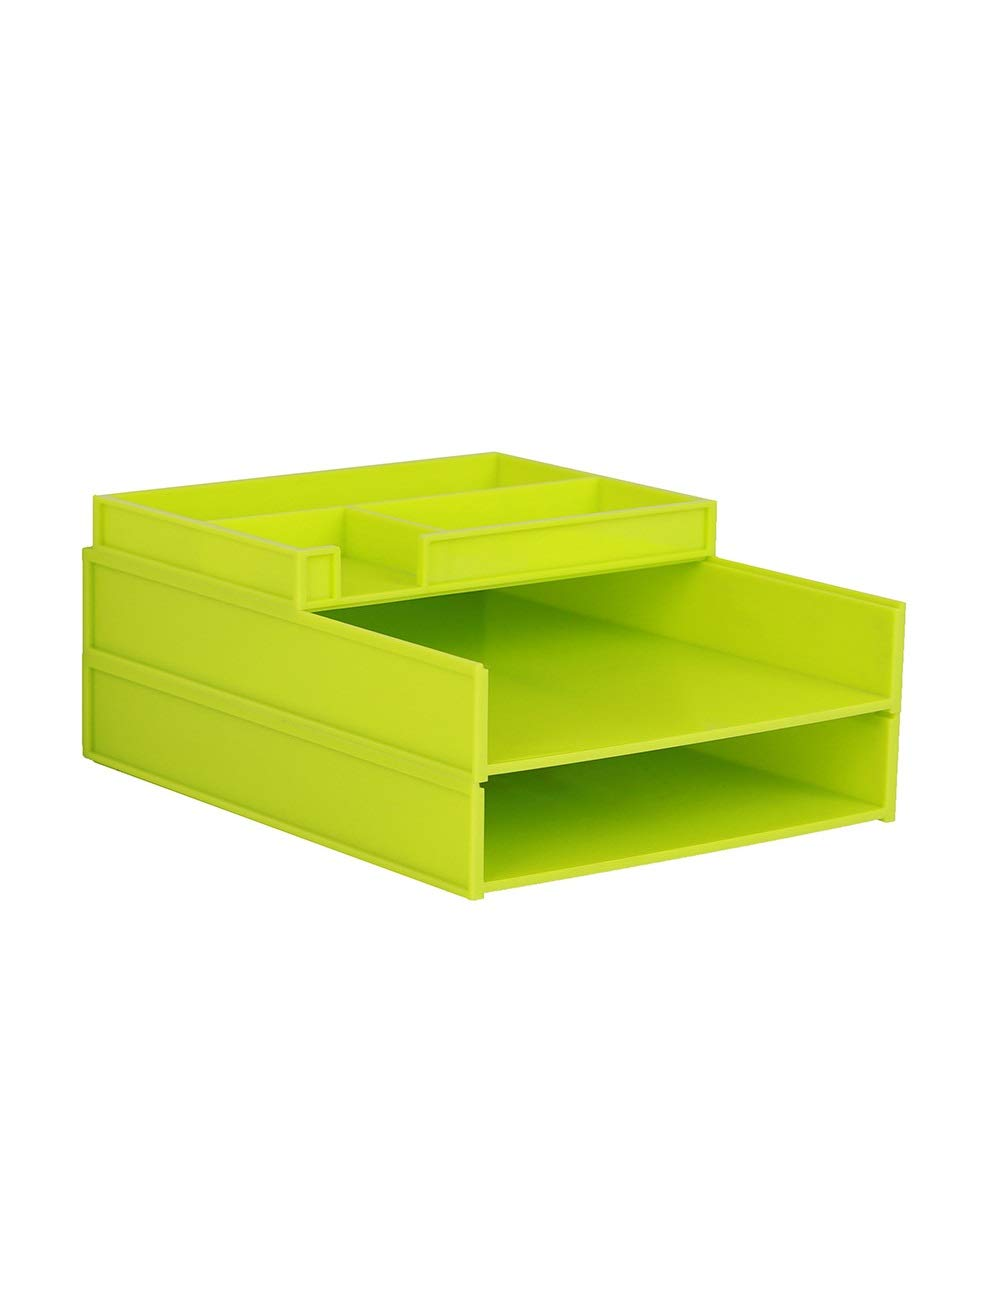 File Cabinets Drawer Mobile Multi-Function Cabinet 2 Drawers Color: Green, Blue, White Office Desktop File Storage Cabinet Storage Home Office Furniture (Color : C) by File Cabinets